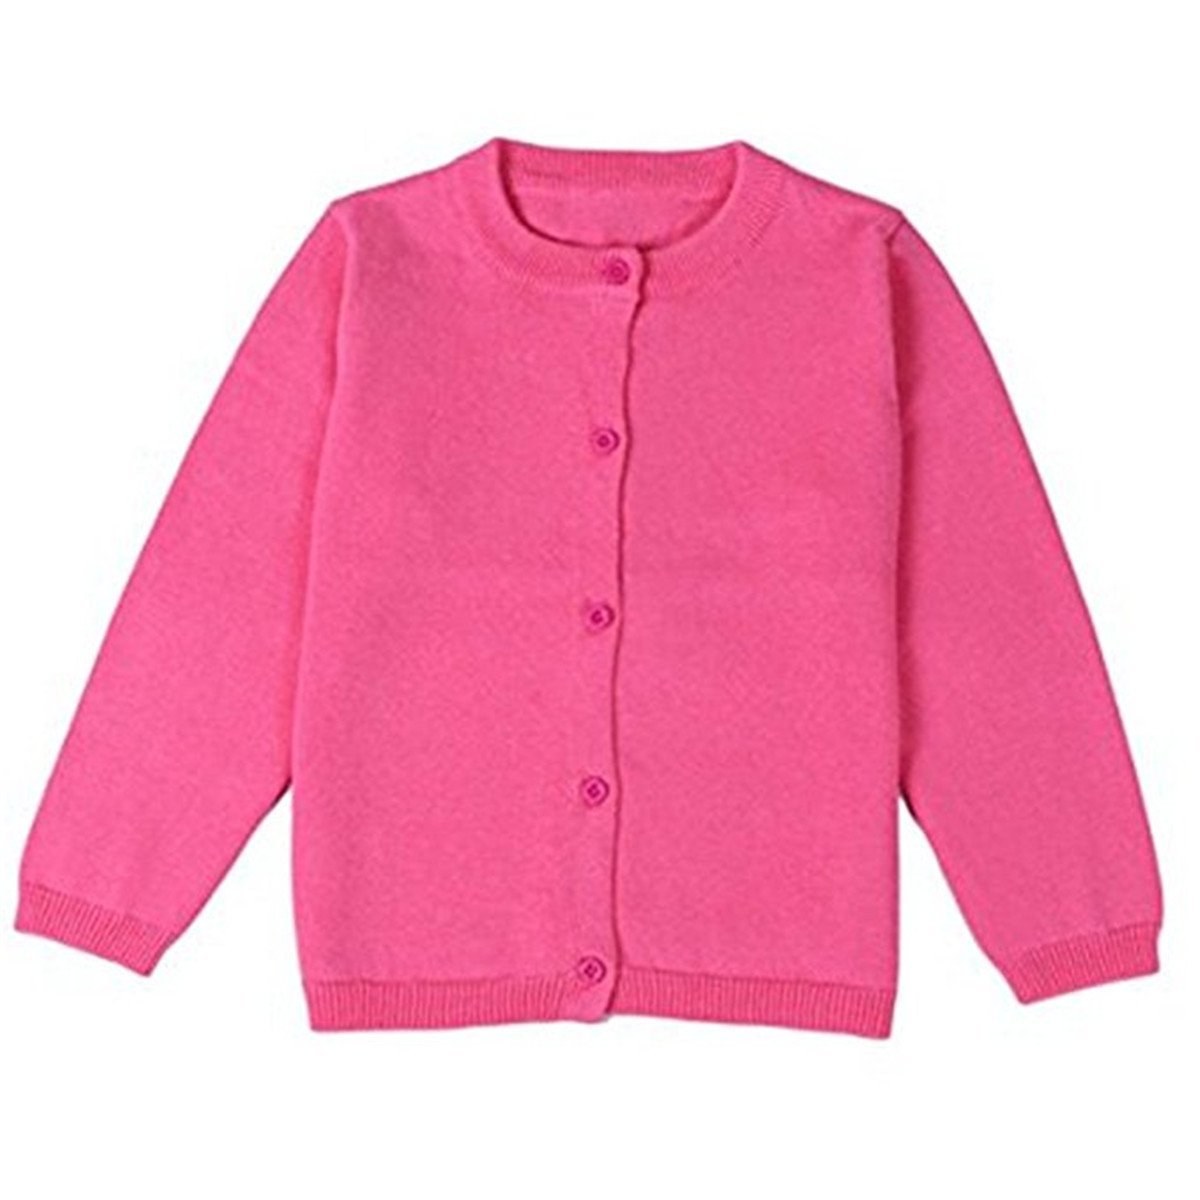 Maylife Little Girls Cute Crew Neck Button-Down Solid Fine Knit Cardigan Sweaters